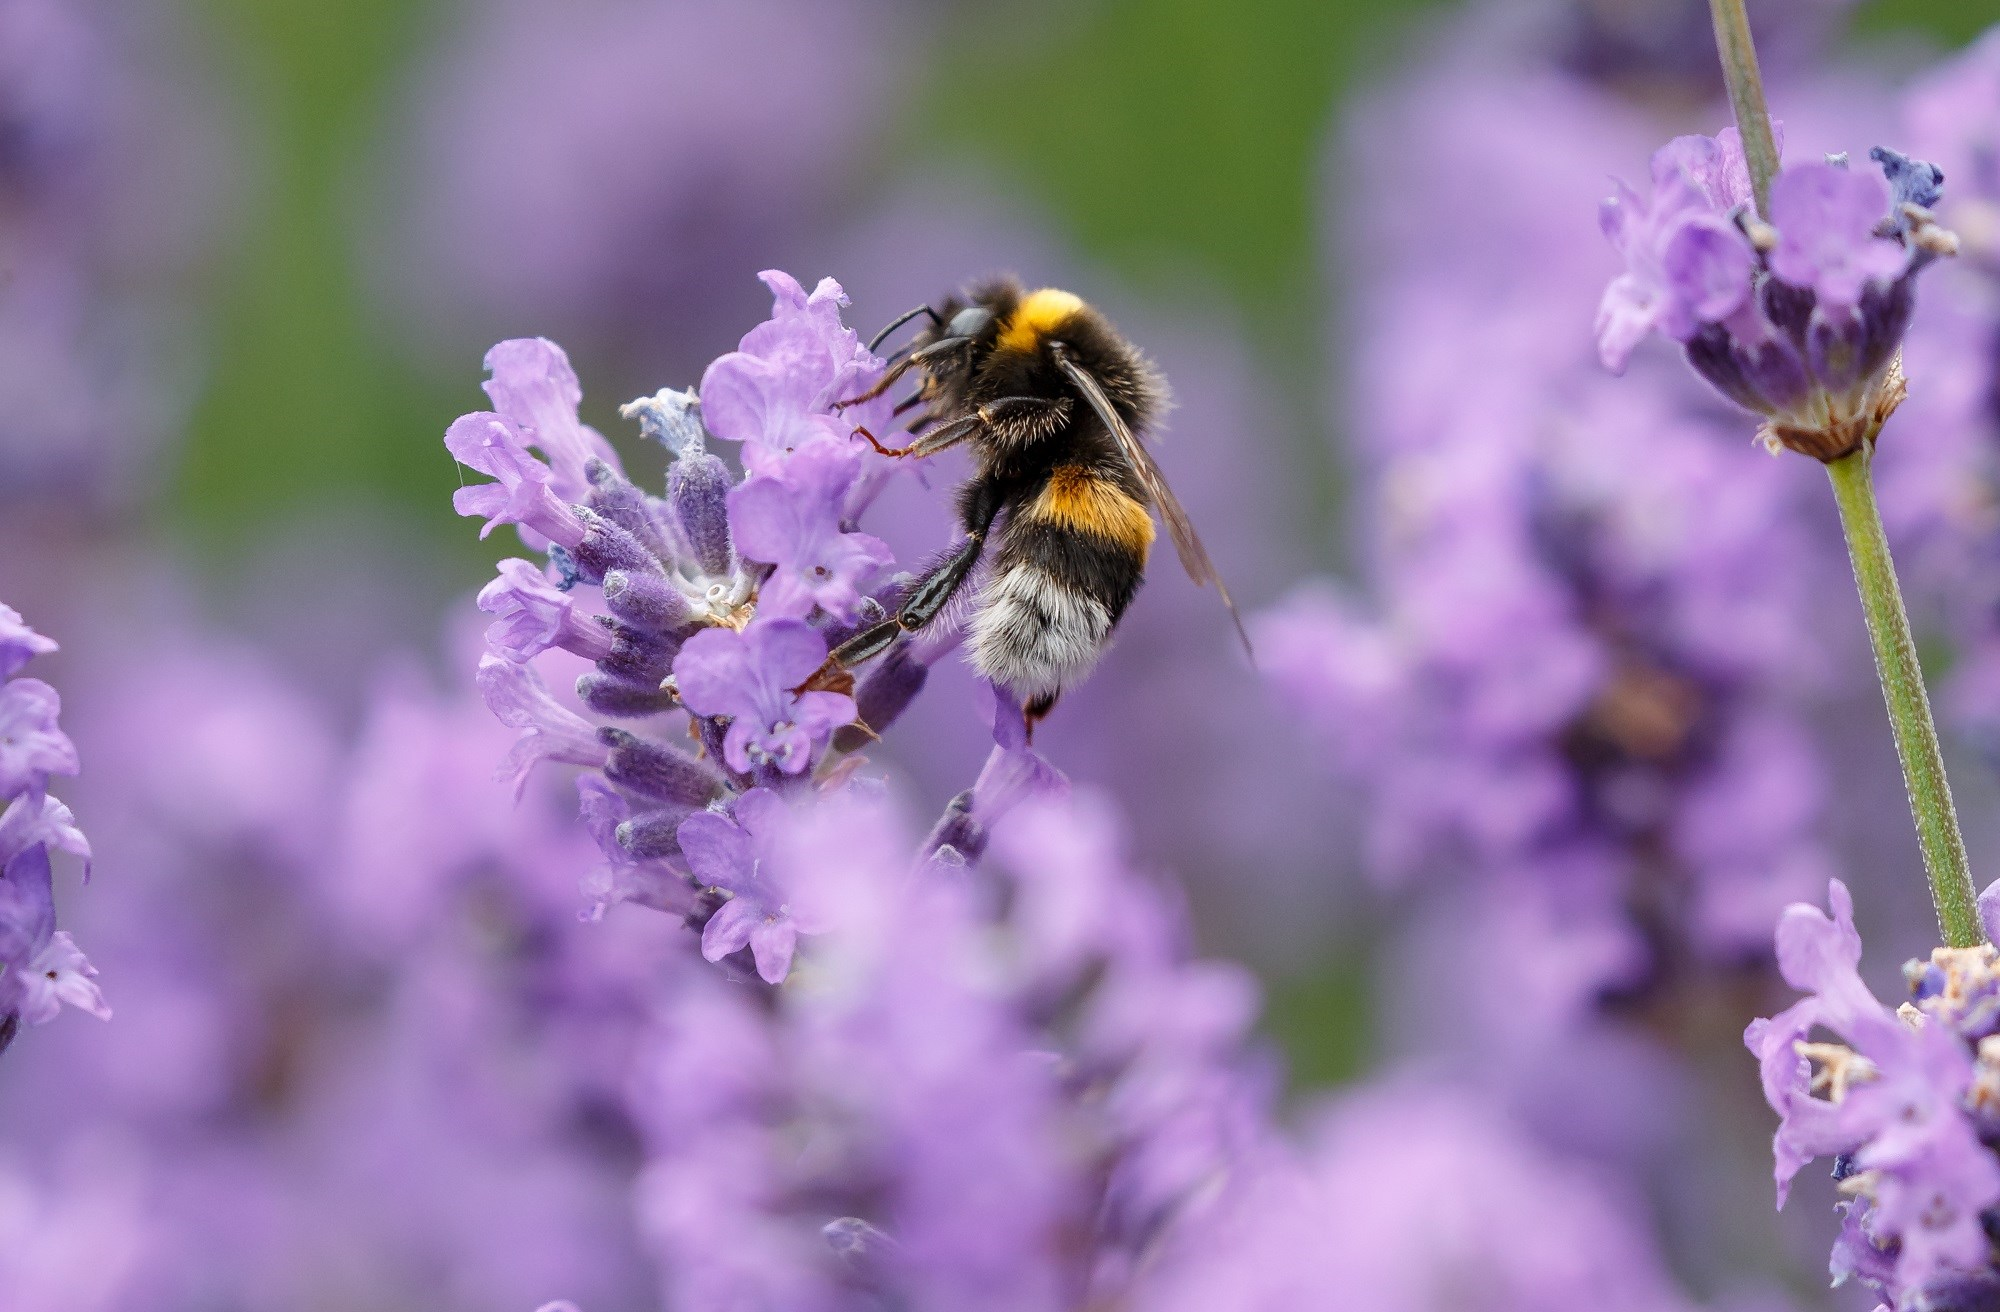 Glyphosate harmful to bees, new study finds